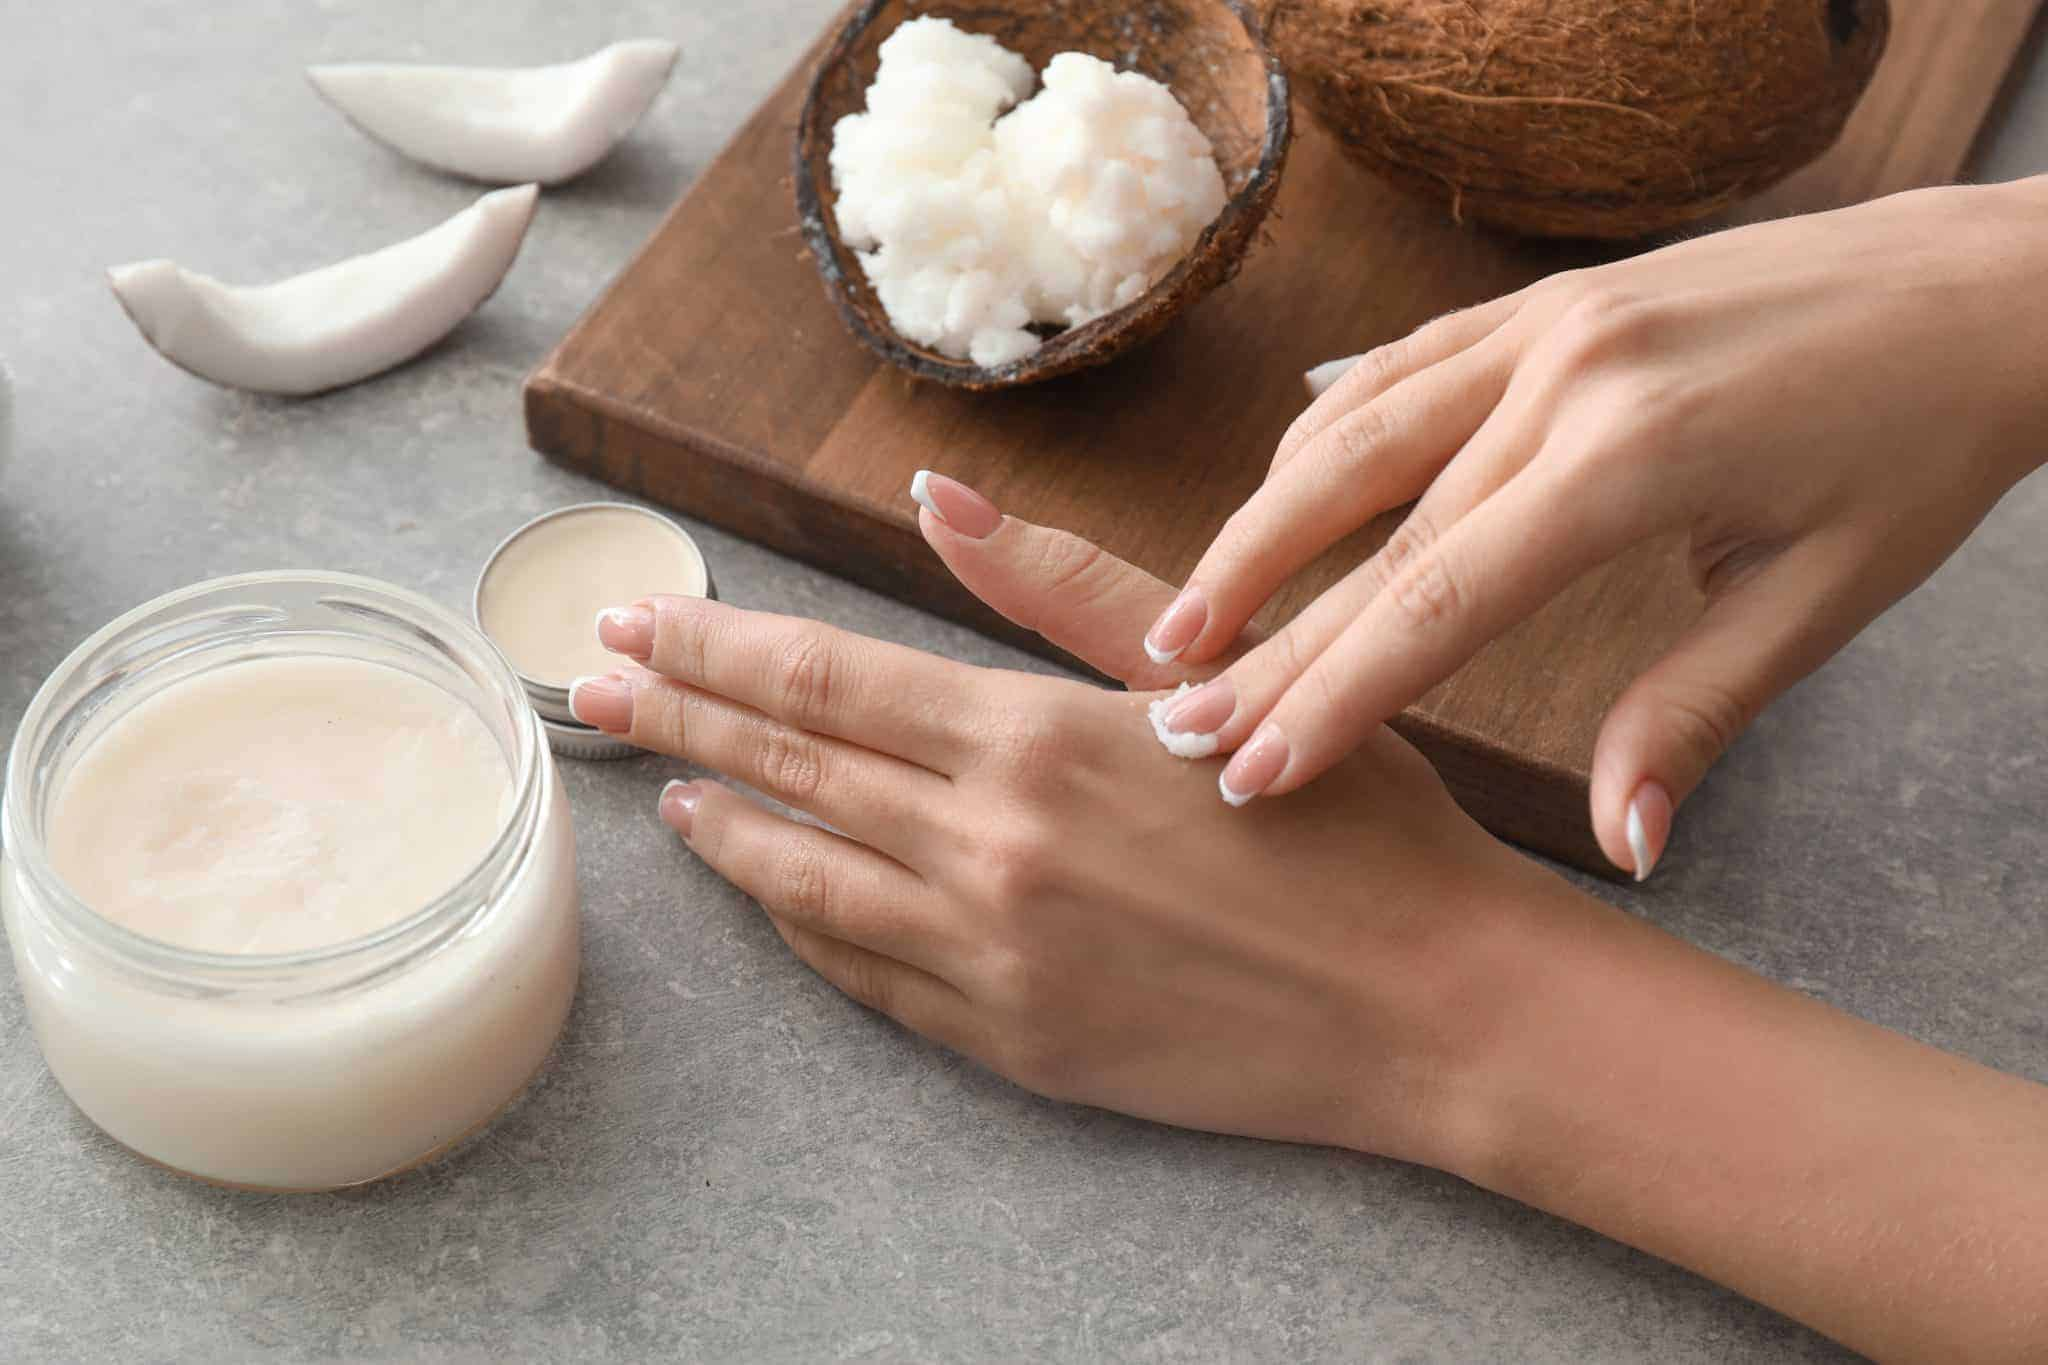 Woman spreading coconut skin care product onto skin